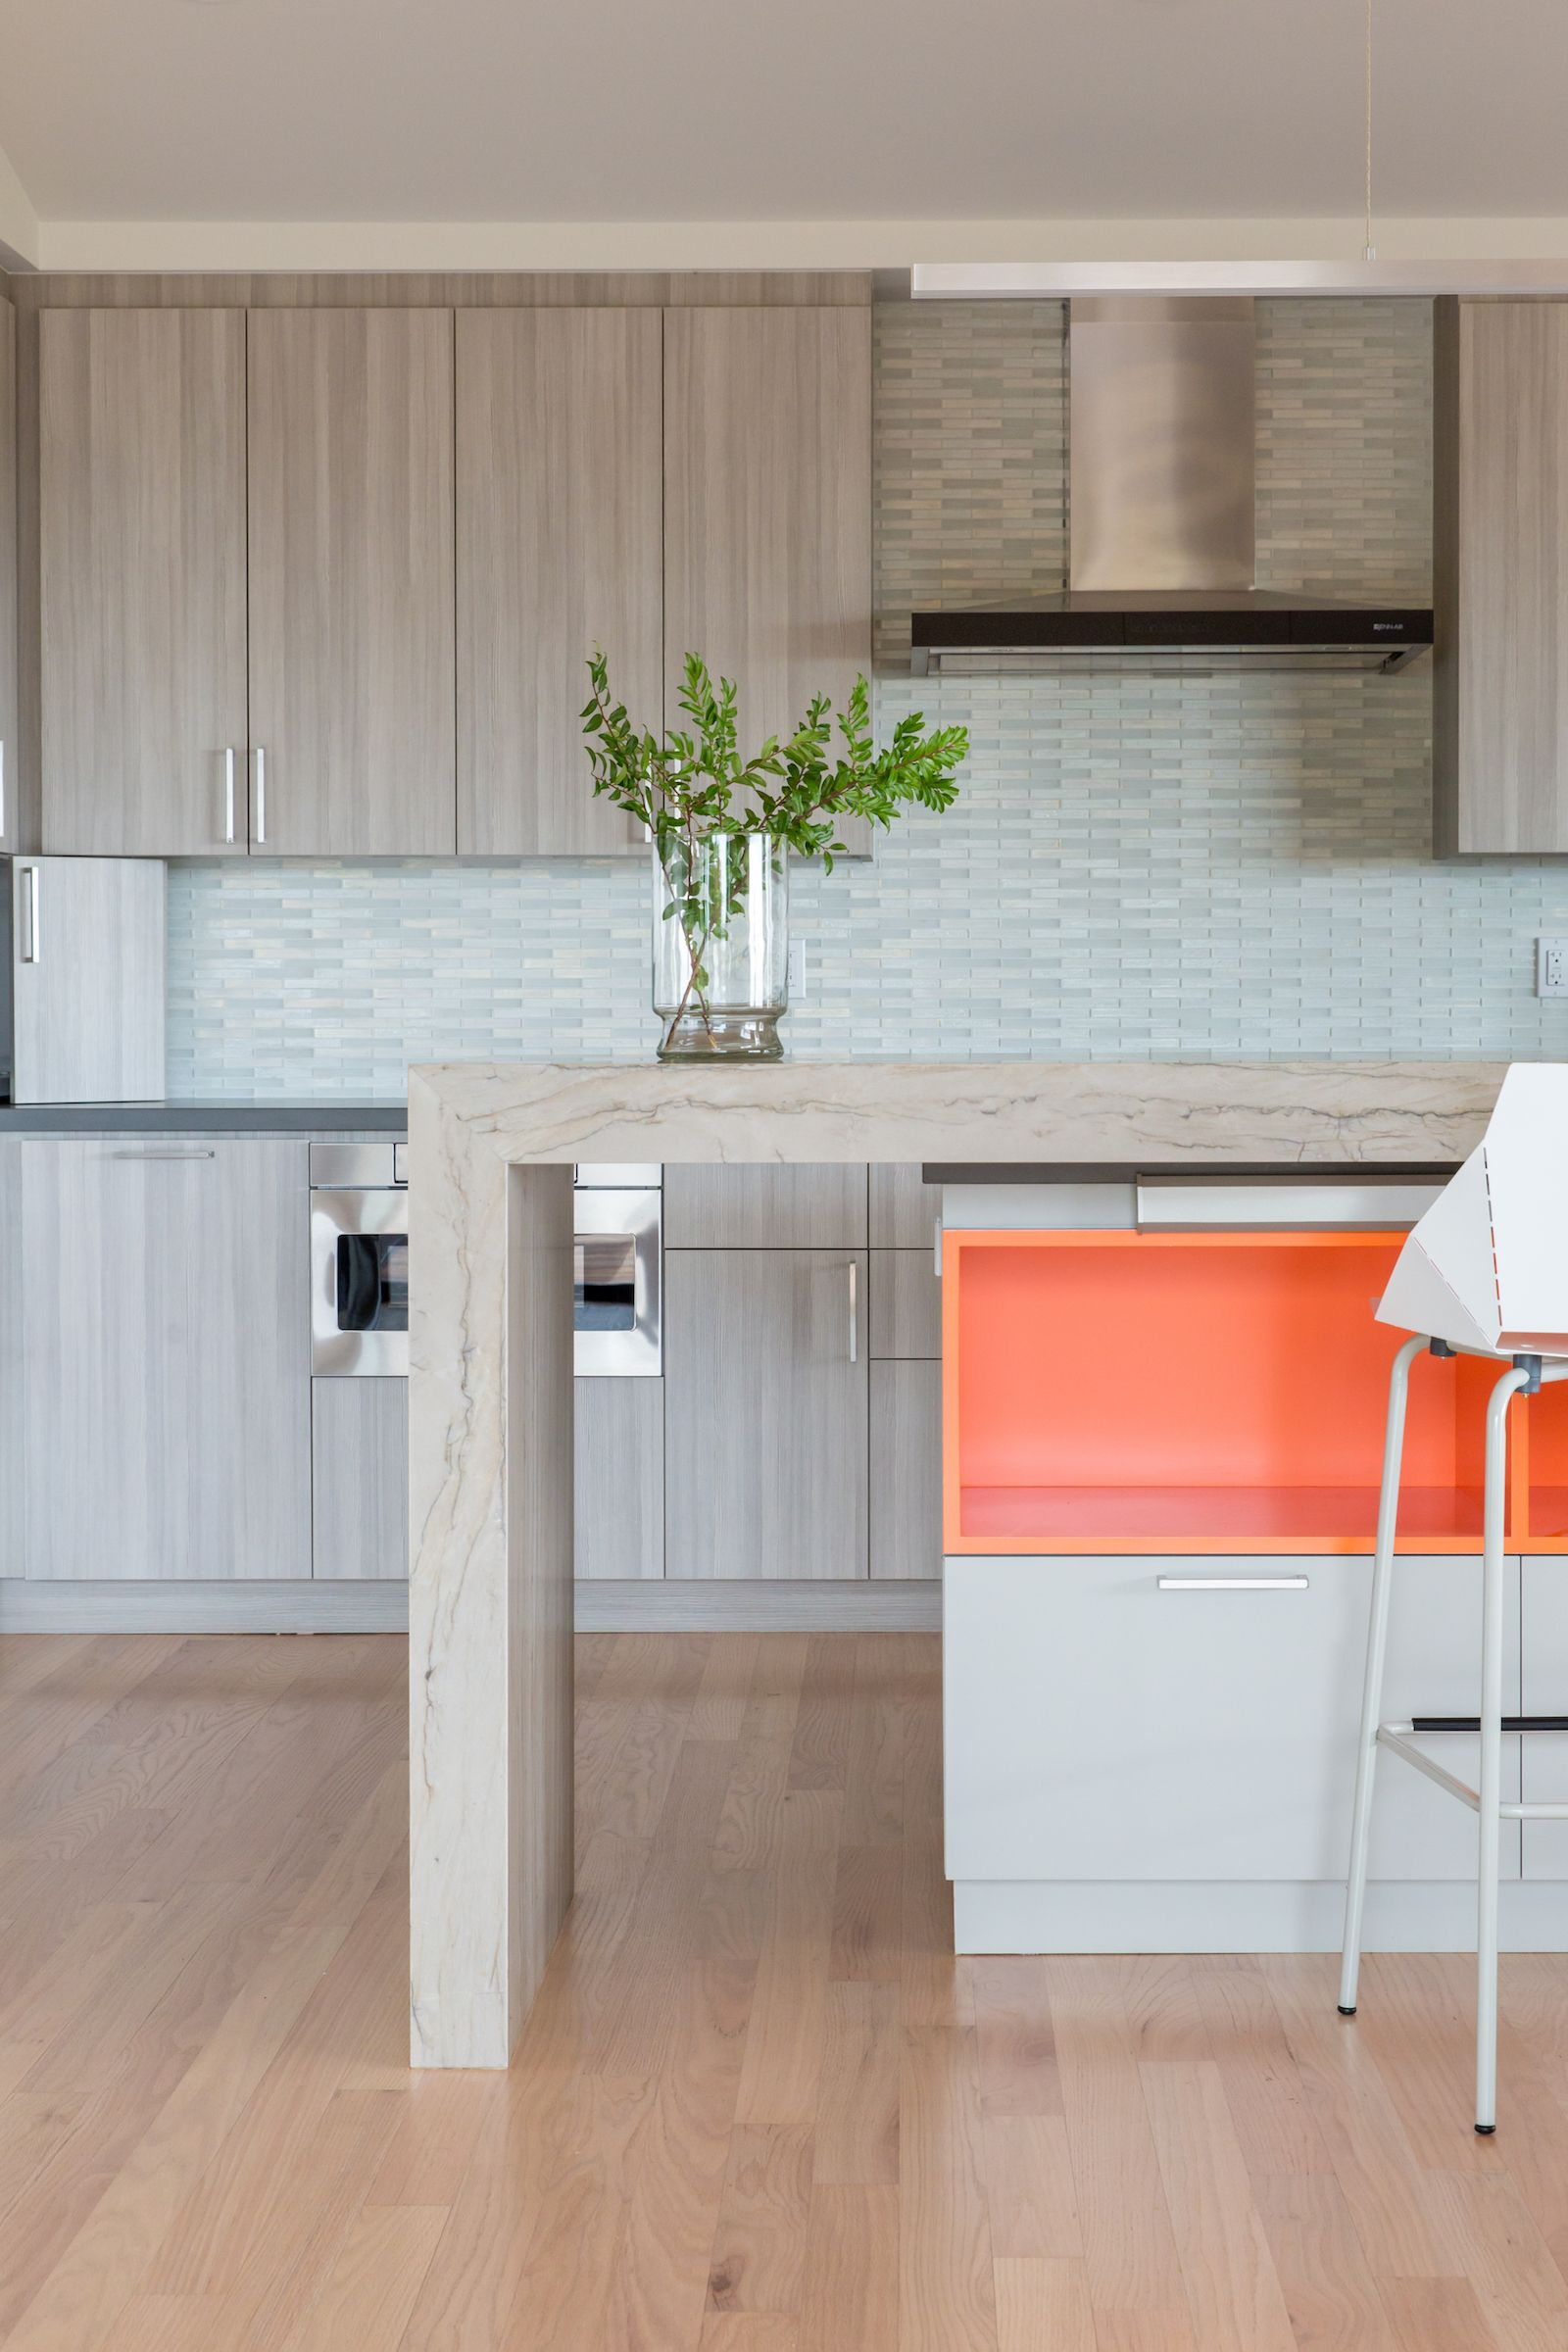 20+ Ideas for Styling with Orange as an Accent